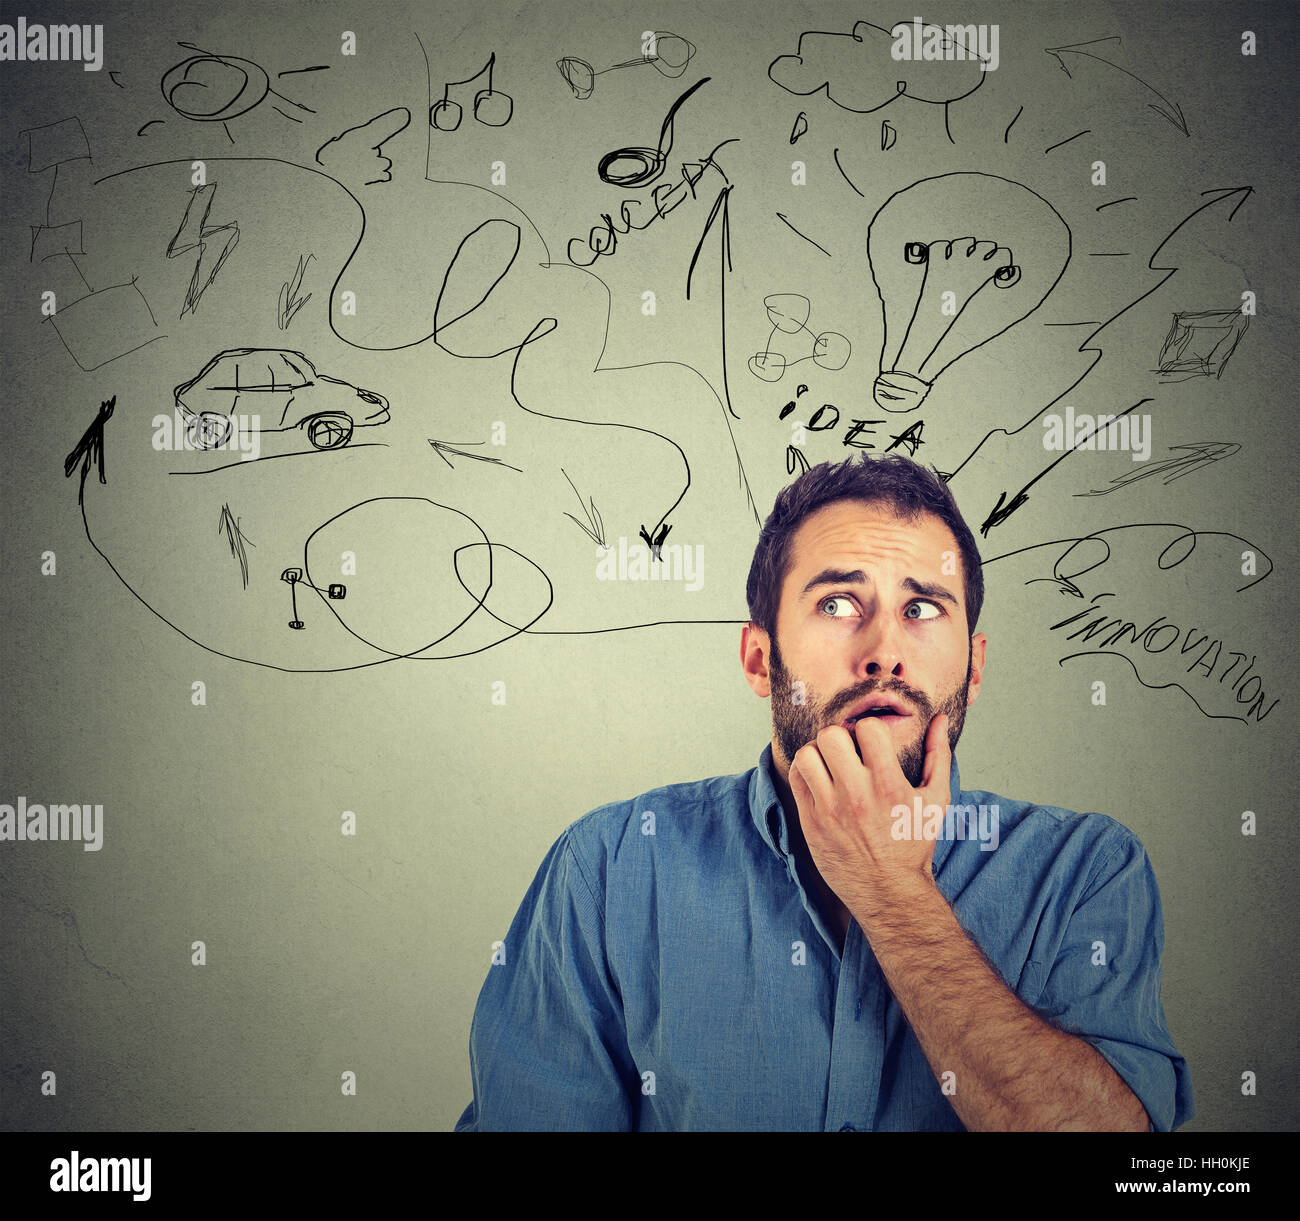 Too many things to do and plan. Worried anxious young man biting his fingernails isolated on gray wall background - Stock Image